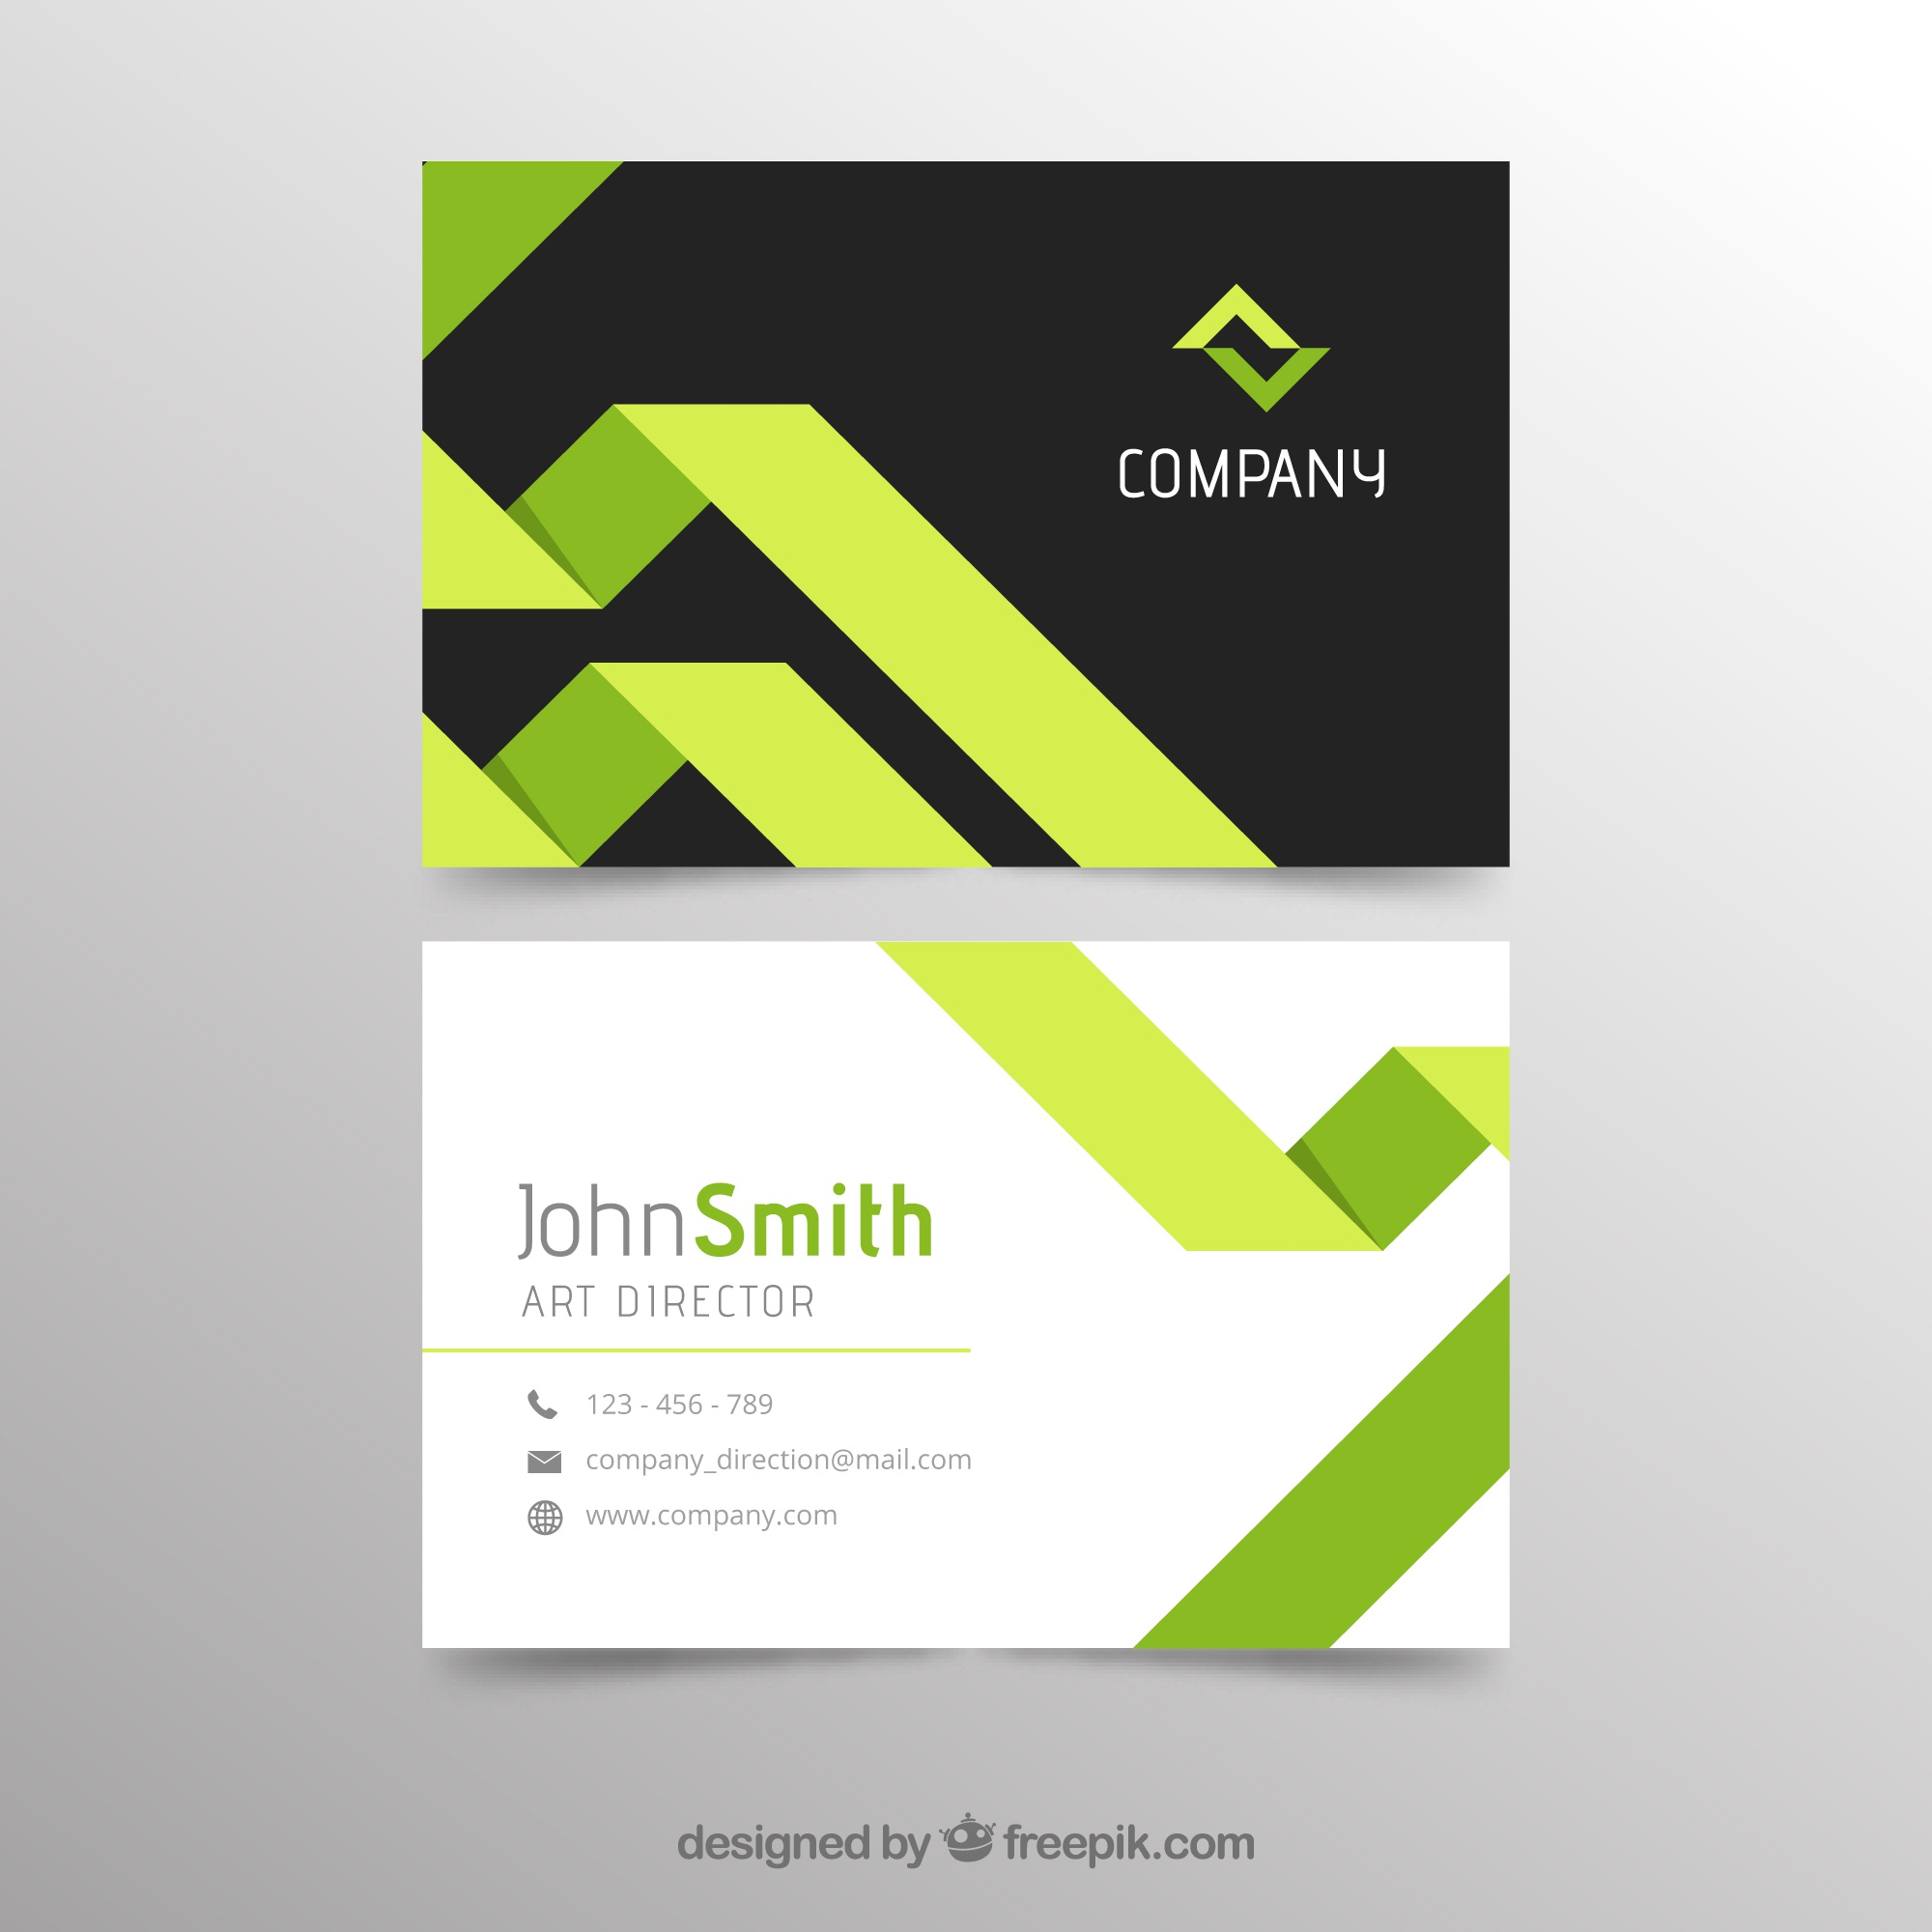 Abstract green and black business card template